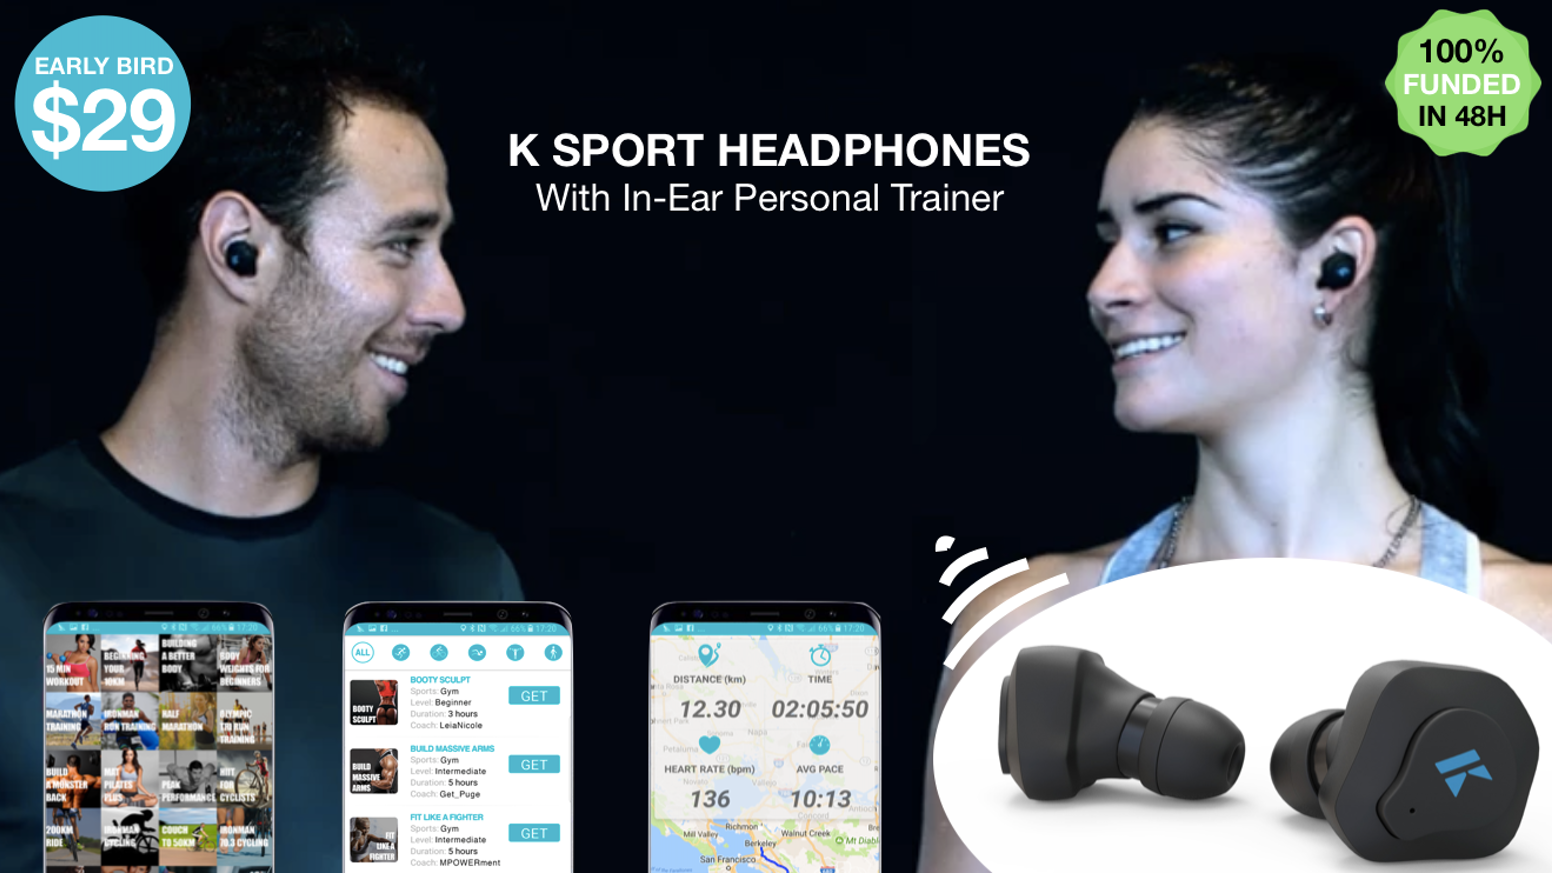 True Wireless Headphones with unlimited access to 100+ adaptive audio training plans for running, cycling, gym, fitness and many more.